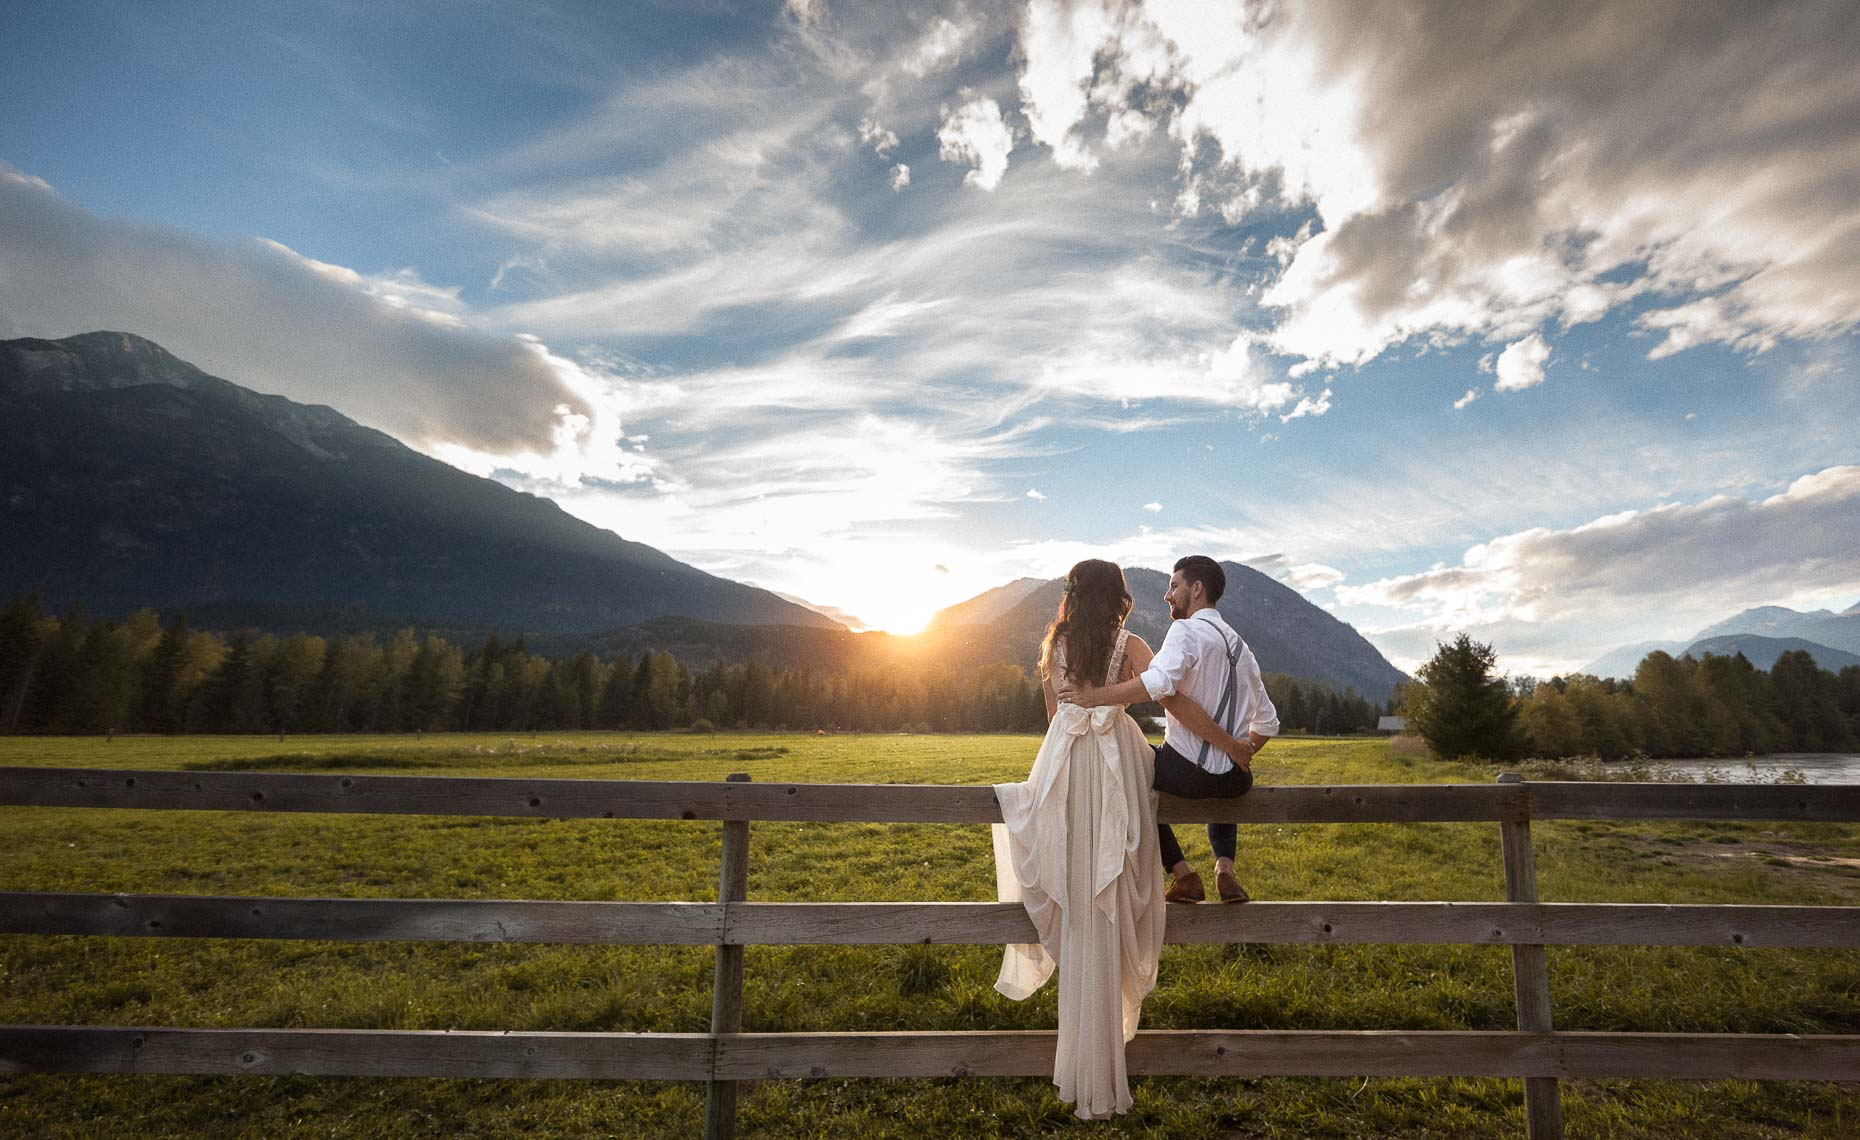 Bride and groom sitting on a fence at sunset farm wedding in Pemberton BC near Whistler.